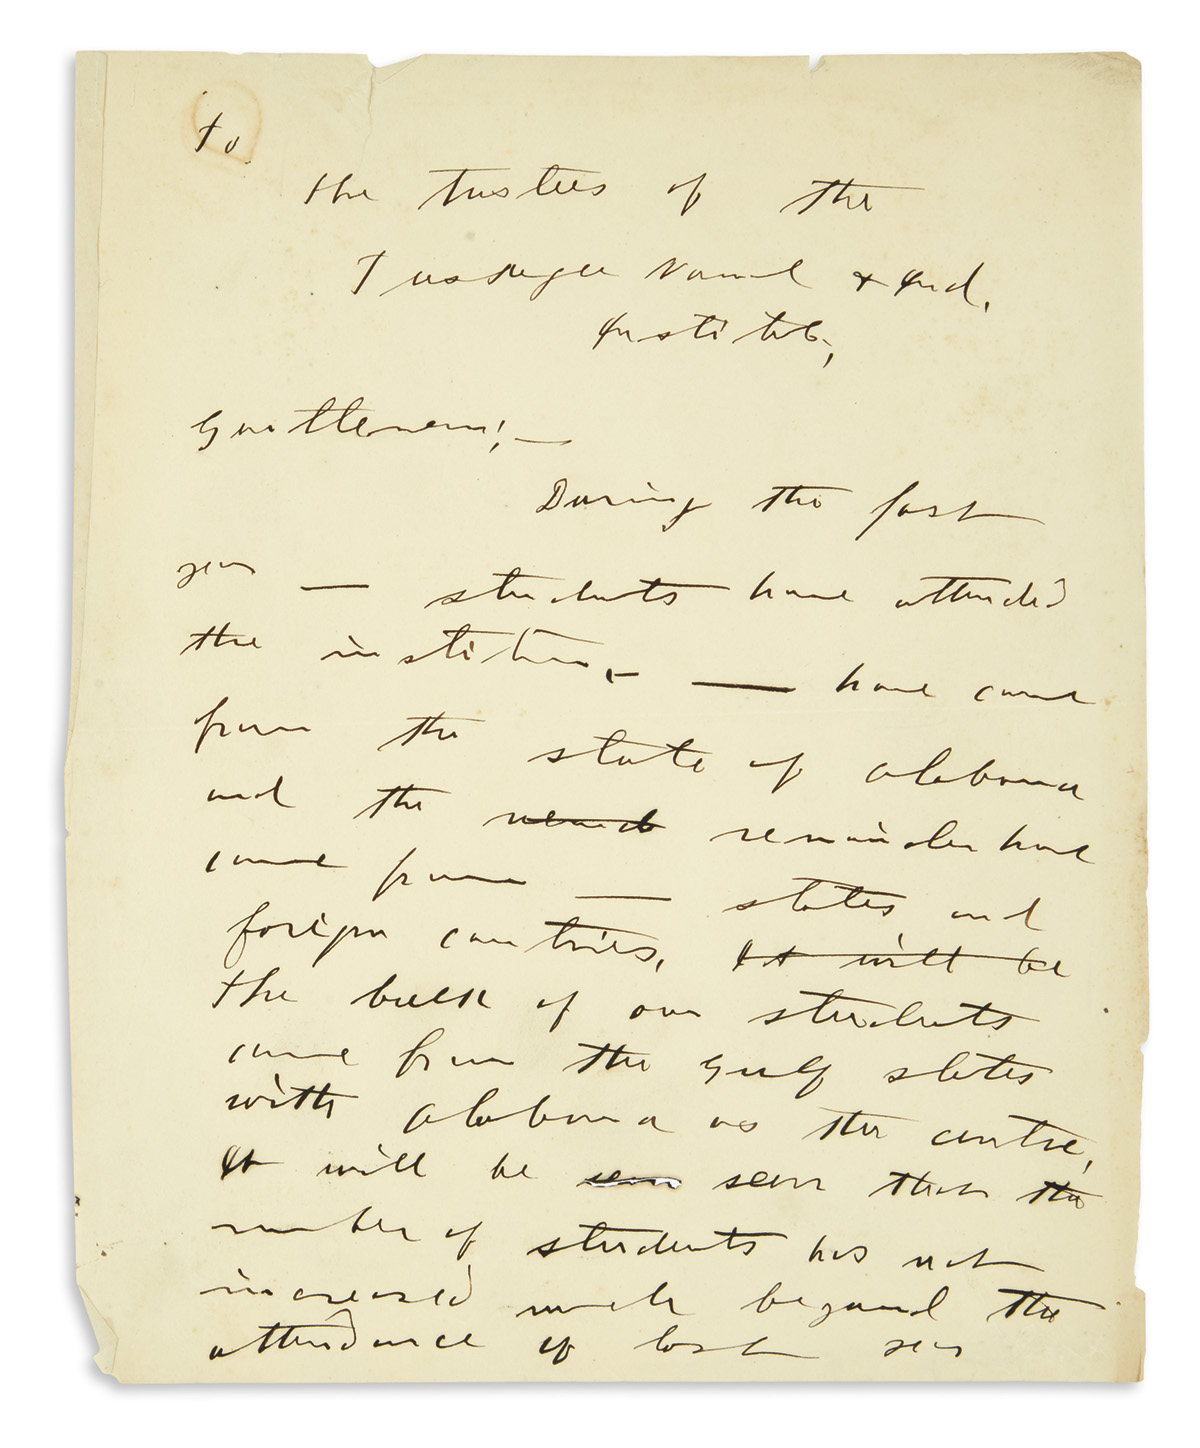 (EDUCATION.) [Washington, Booker T.] Partial manuscript draft of his annual report to the trustees of the Tuskegee Institute.